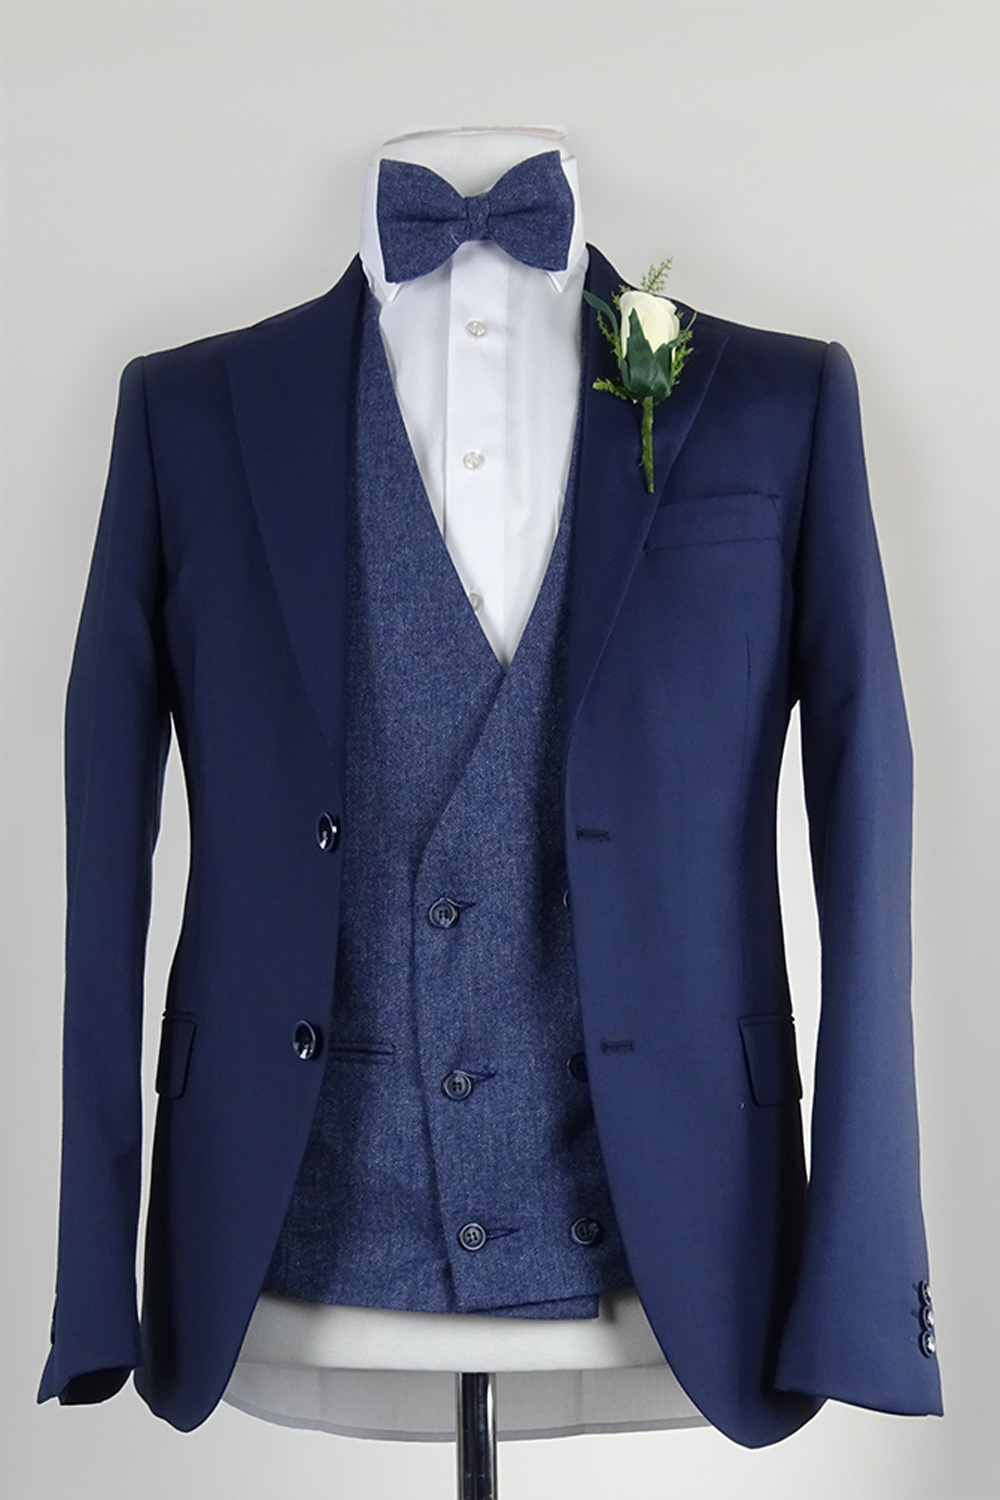 Navy Suit Blue Double Breasted Waistcoat Rental Option 120 Euro